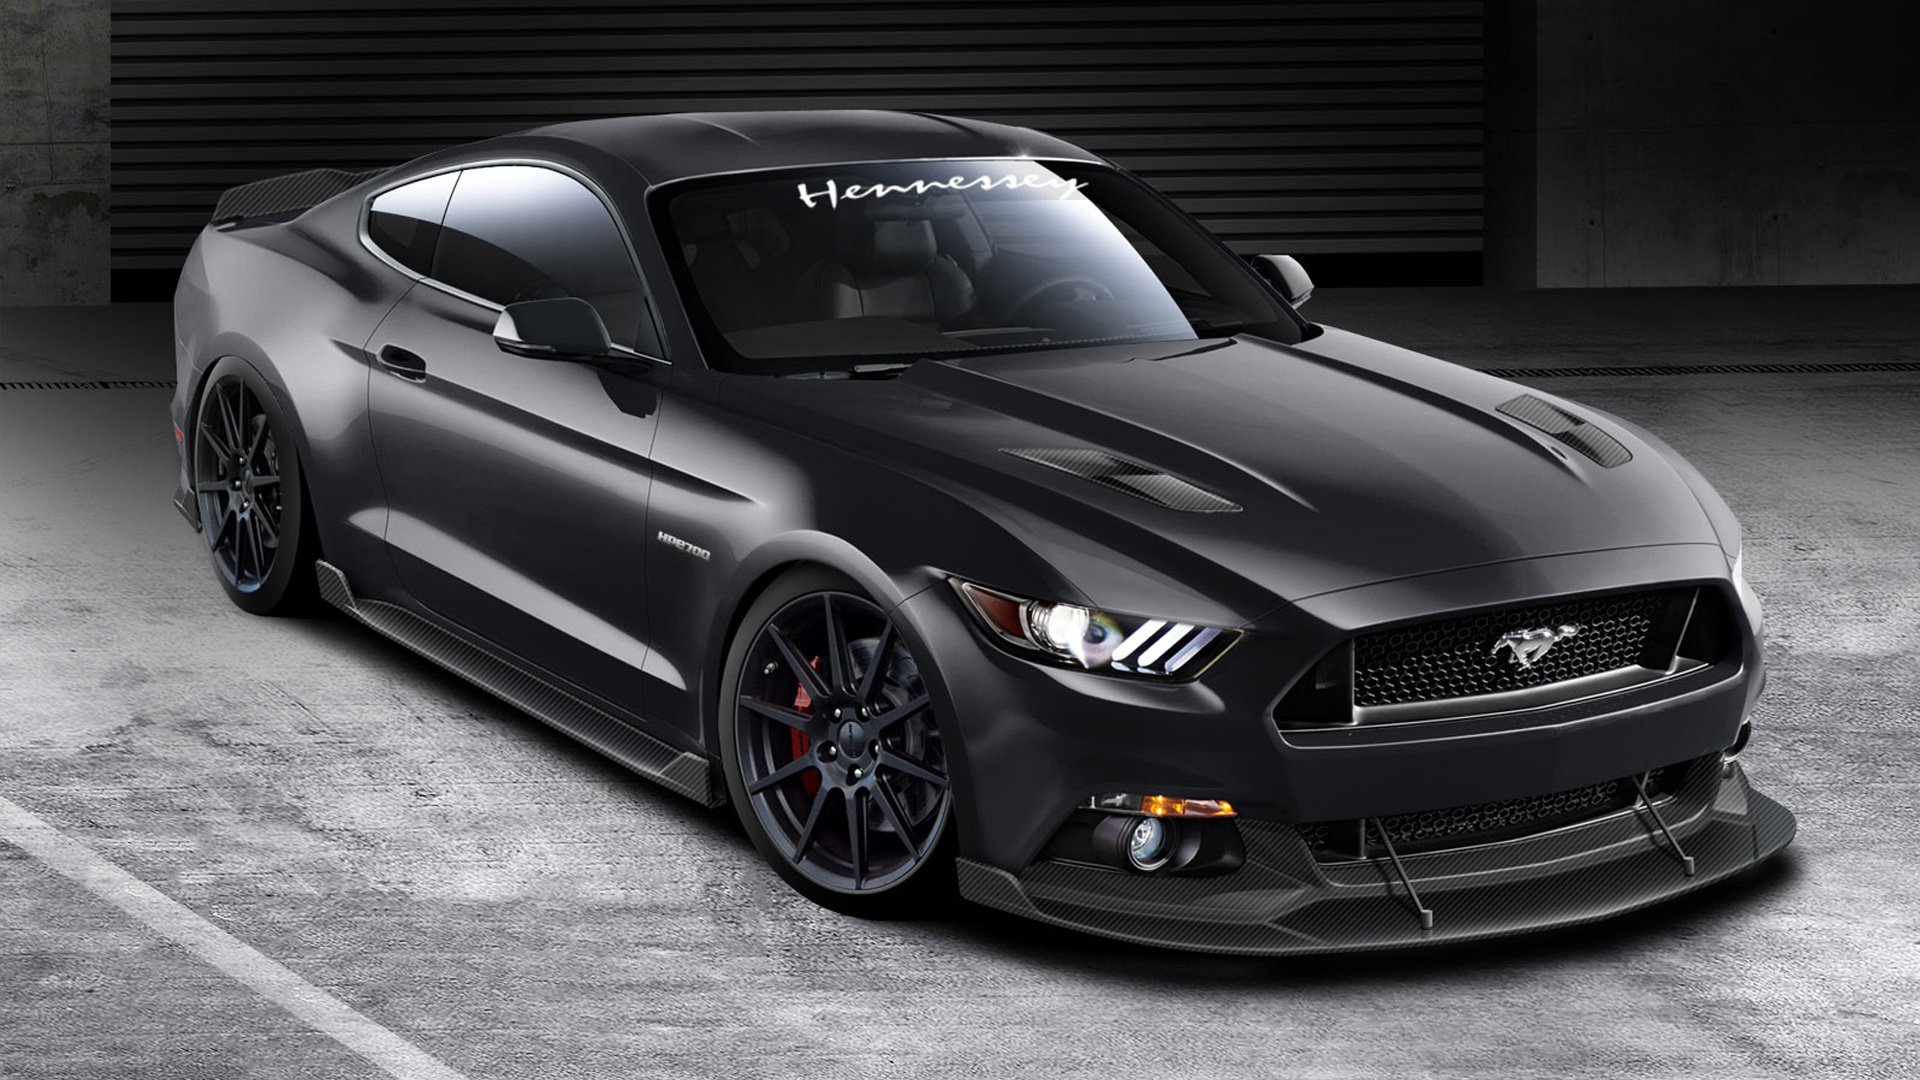 1920x1080 - Ford Mustang GT Wallpapers 3